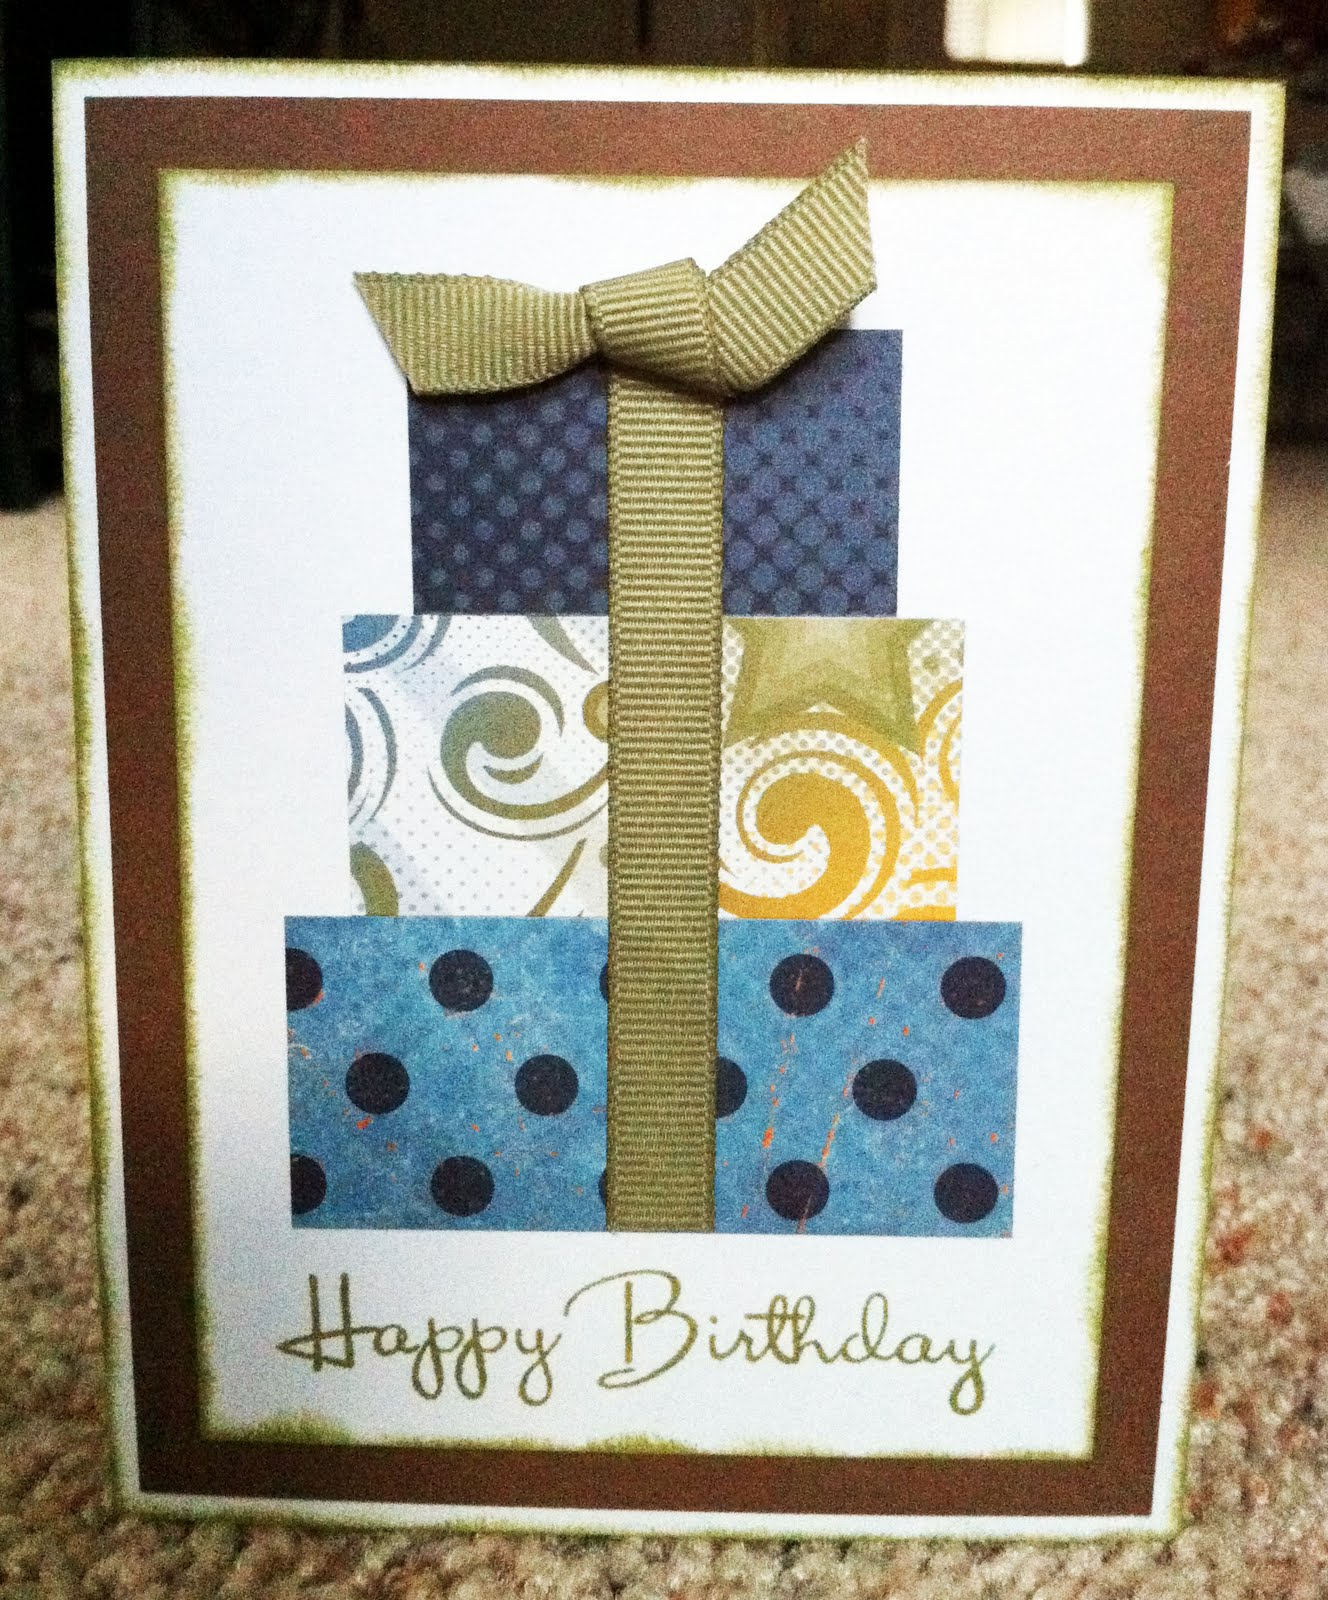 Playing With Paper: Scrapbooks, Cards & DIY: Masculine